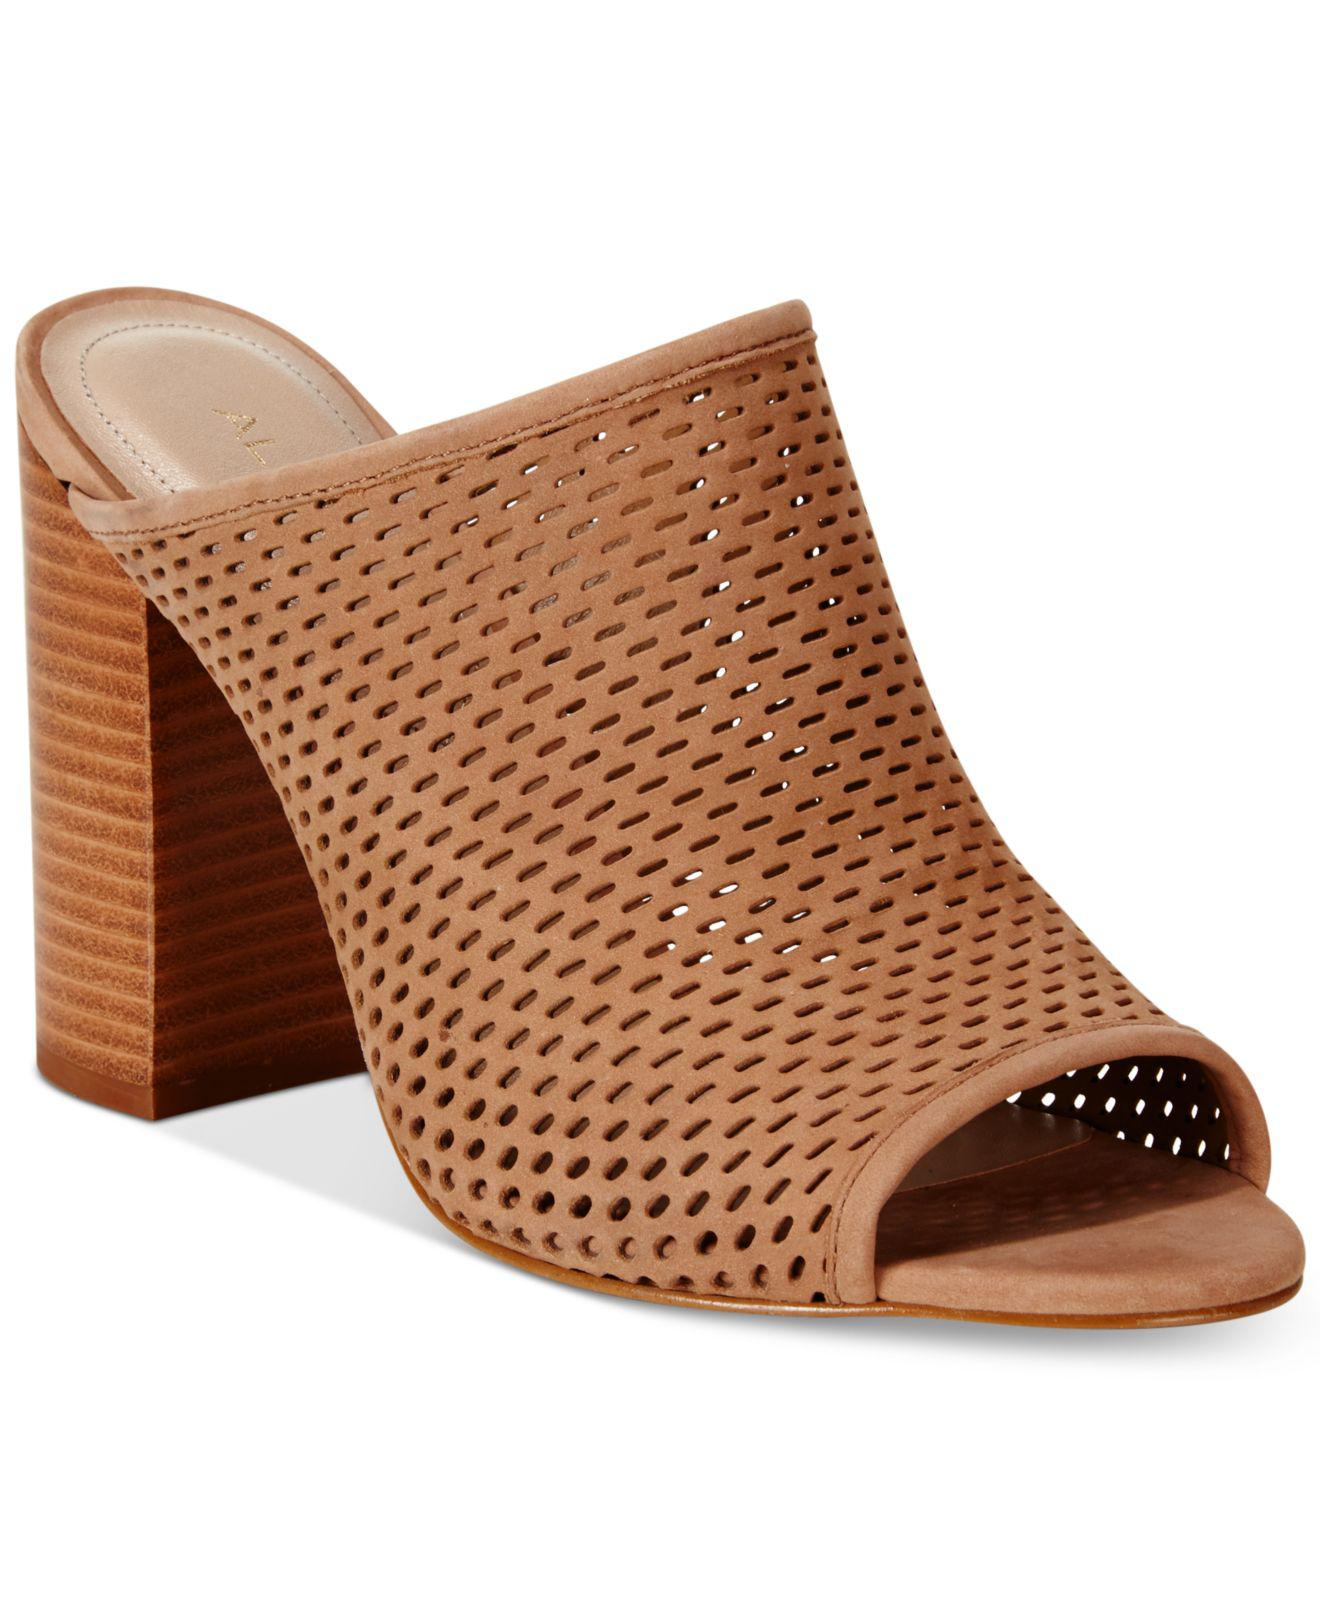 8a4b201d22c Lyst - ALDO Women s Thiasa Peep-toe Mules in Brown